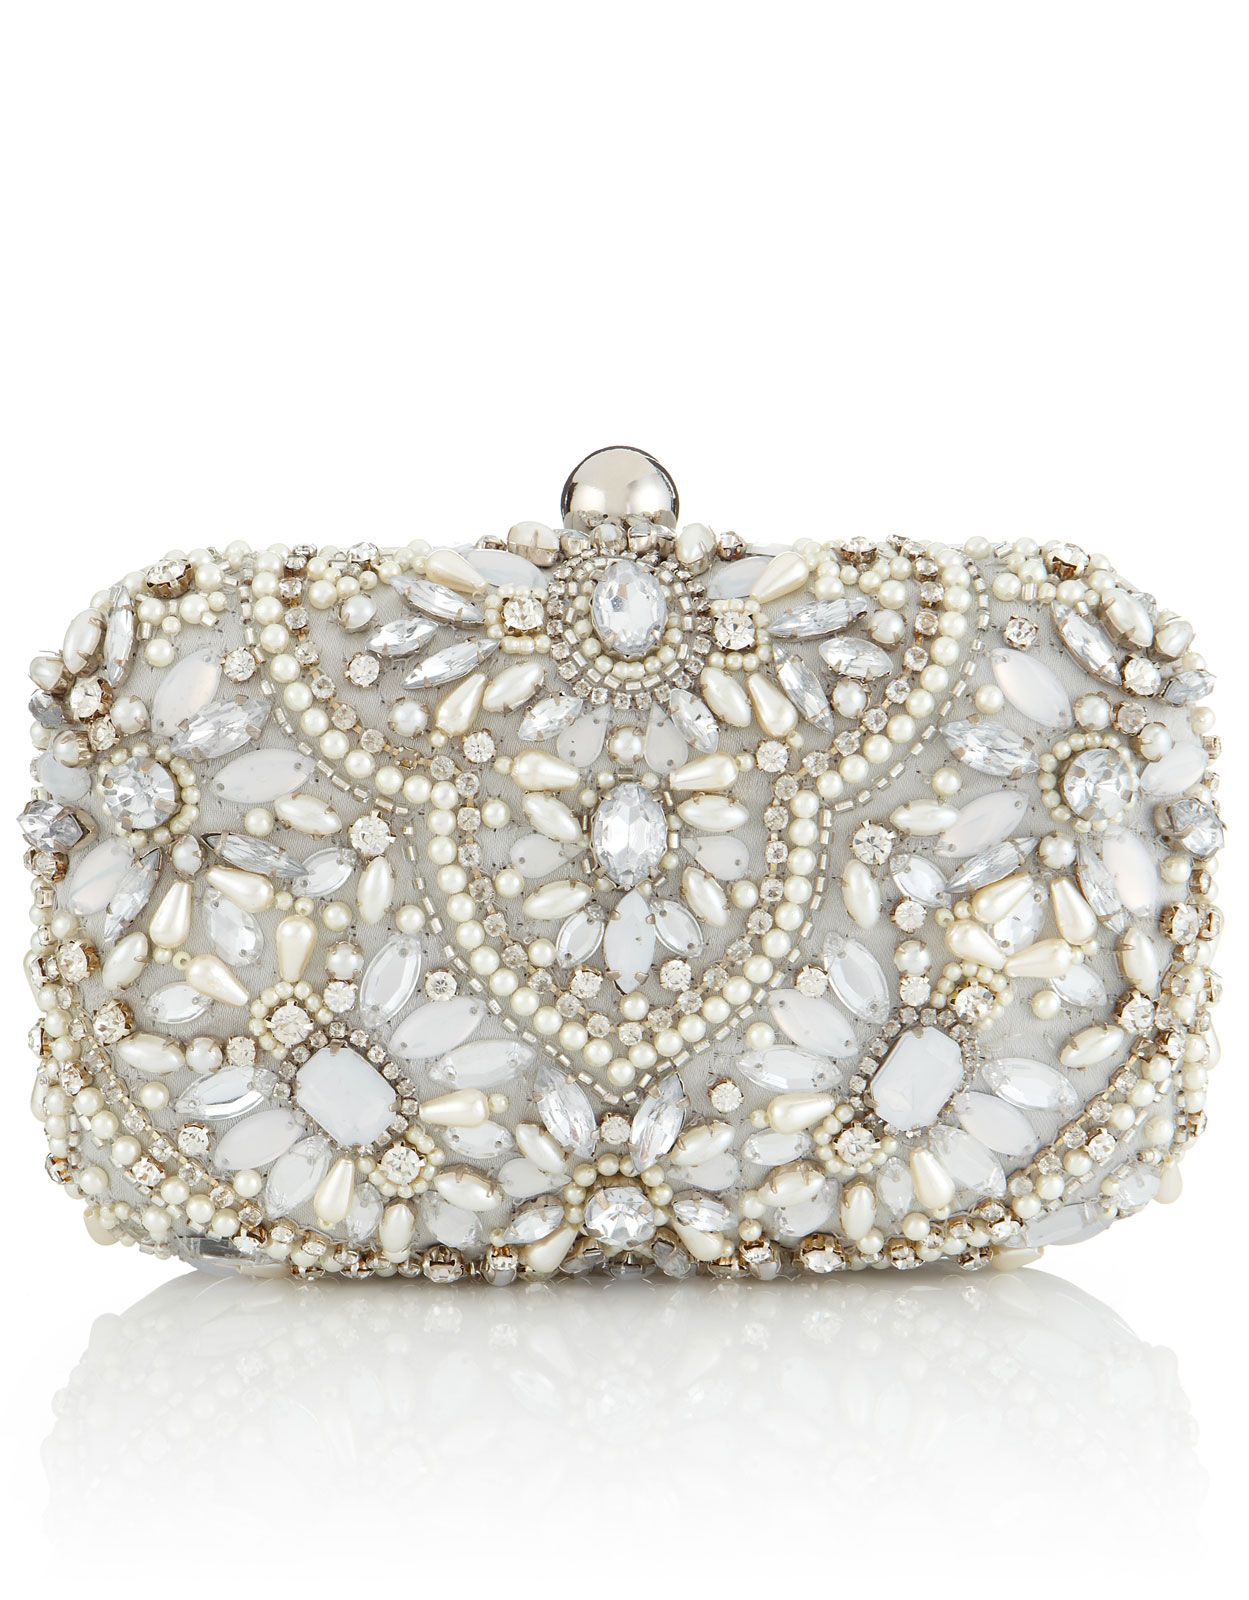 ... Bags for Women. Heavy Embellished Box Clutch Bag  ee40ad3982156